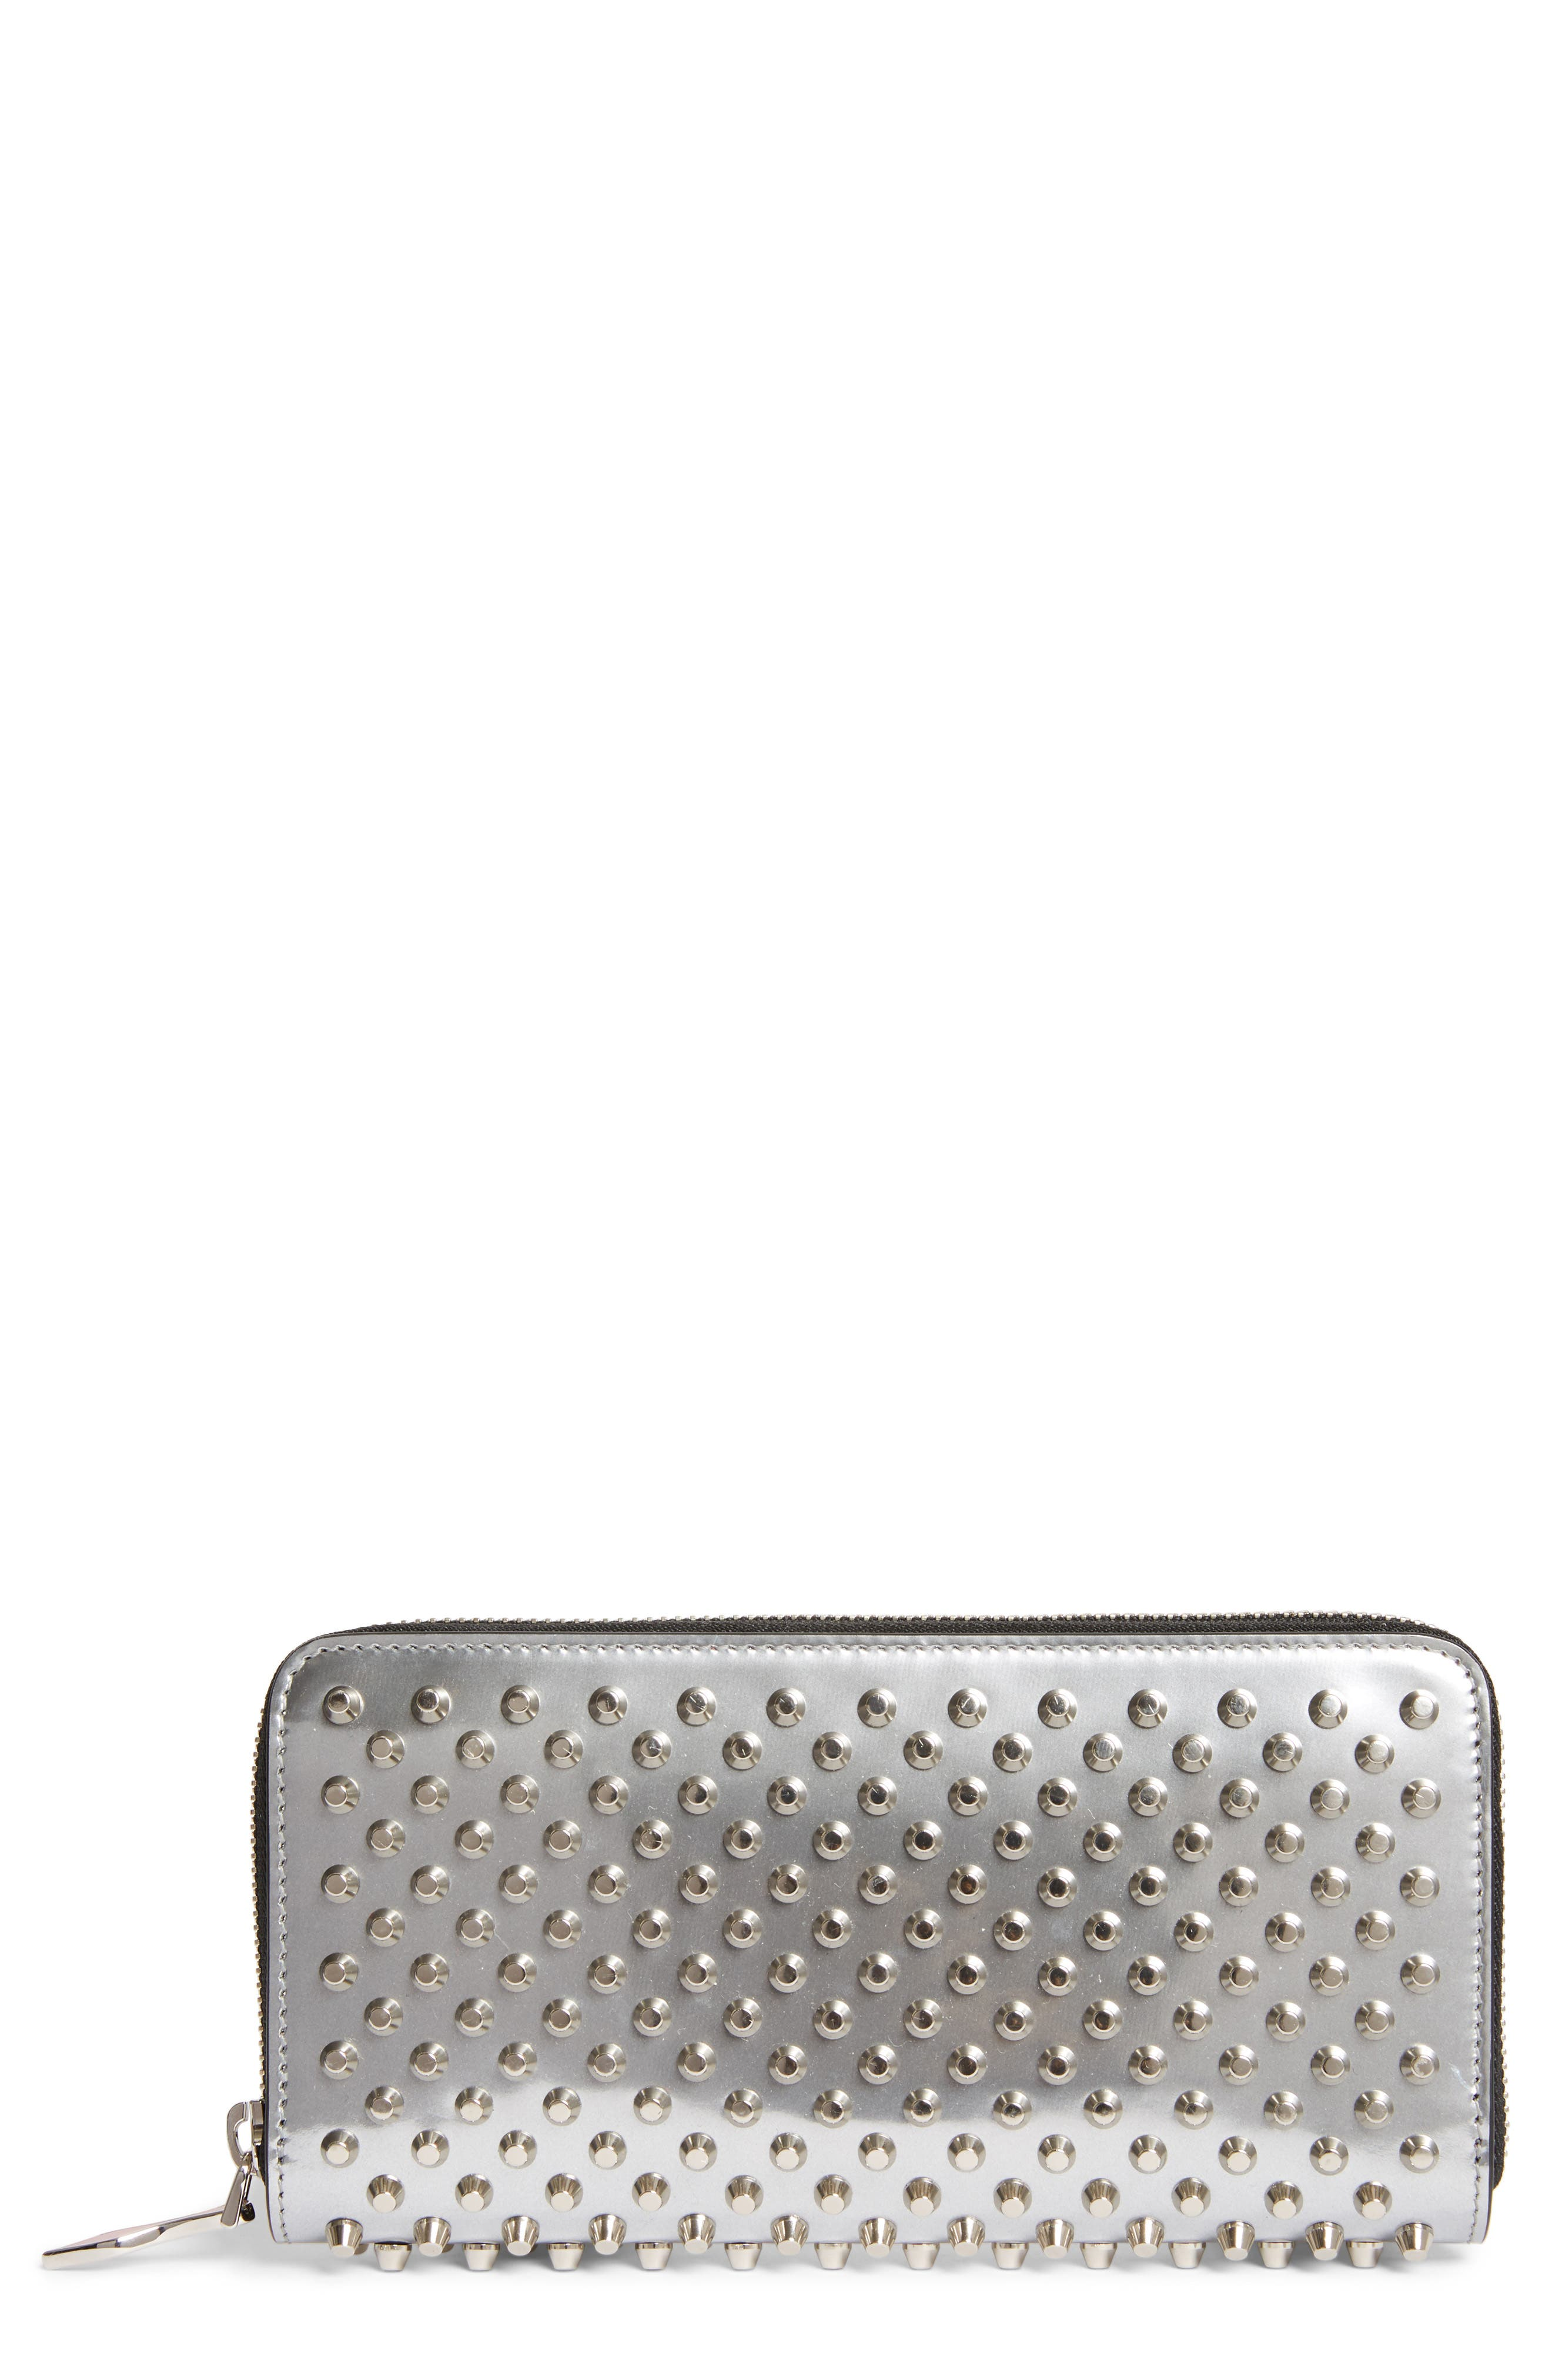 Panettone Spiked Metallic Leather Wallet,                             Main thumbnail 1, color,